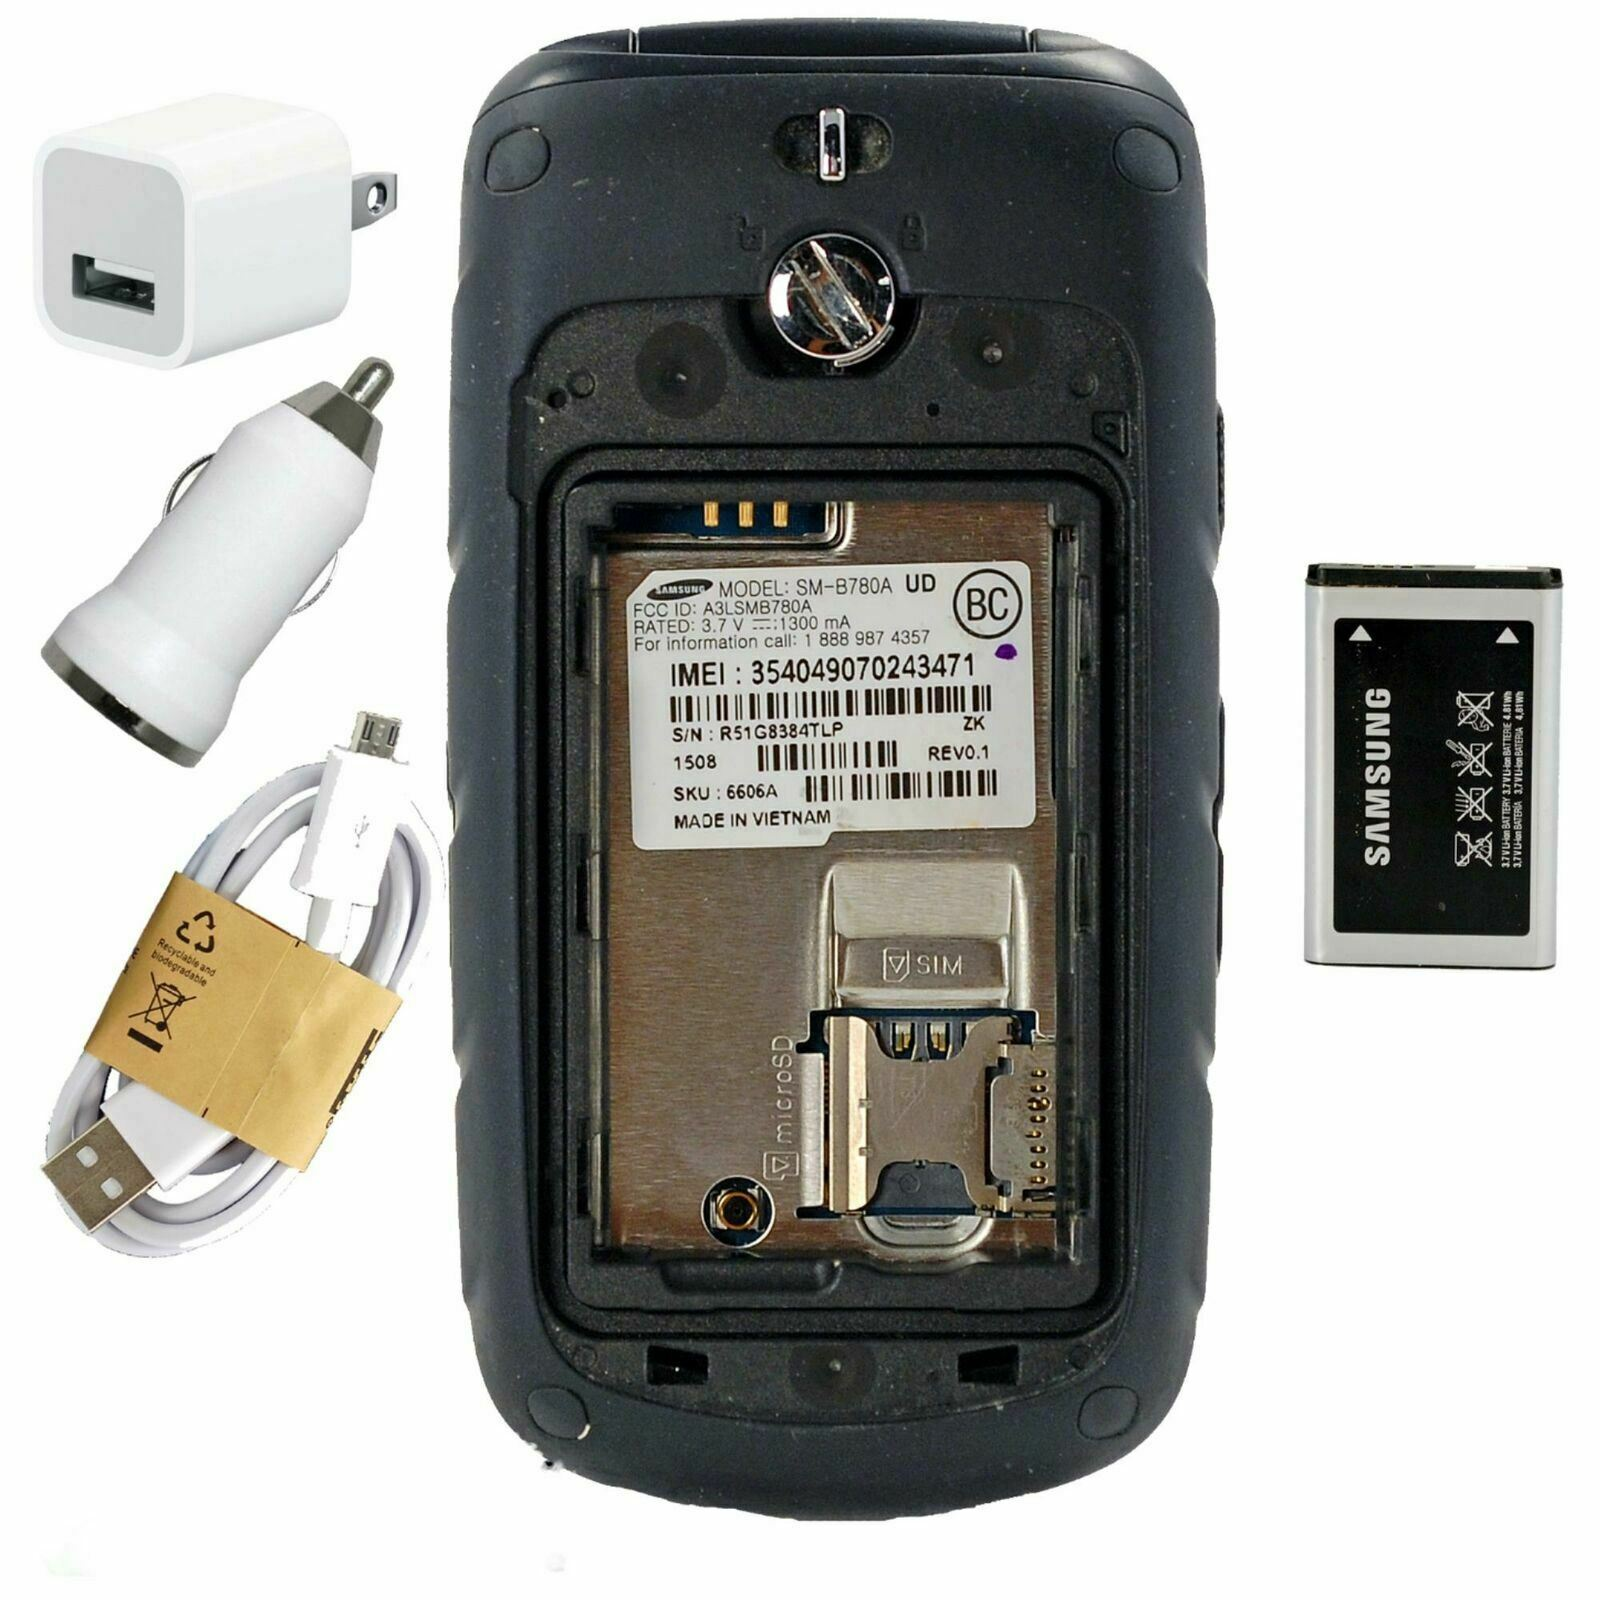 Samsung Rugby 4 SM-B780 Black (AT&T) CelL Phone - 3G High Speed GSM